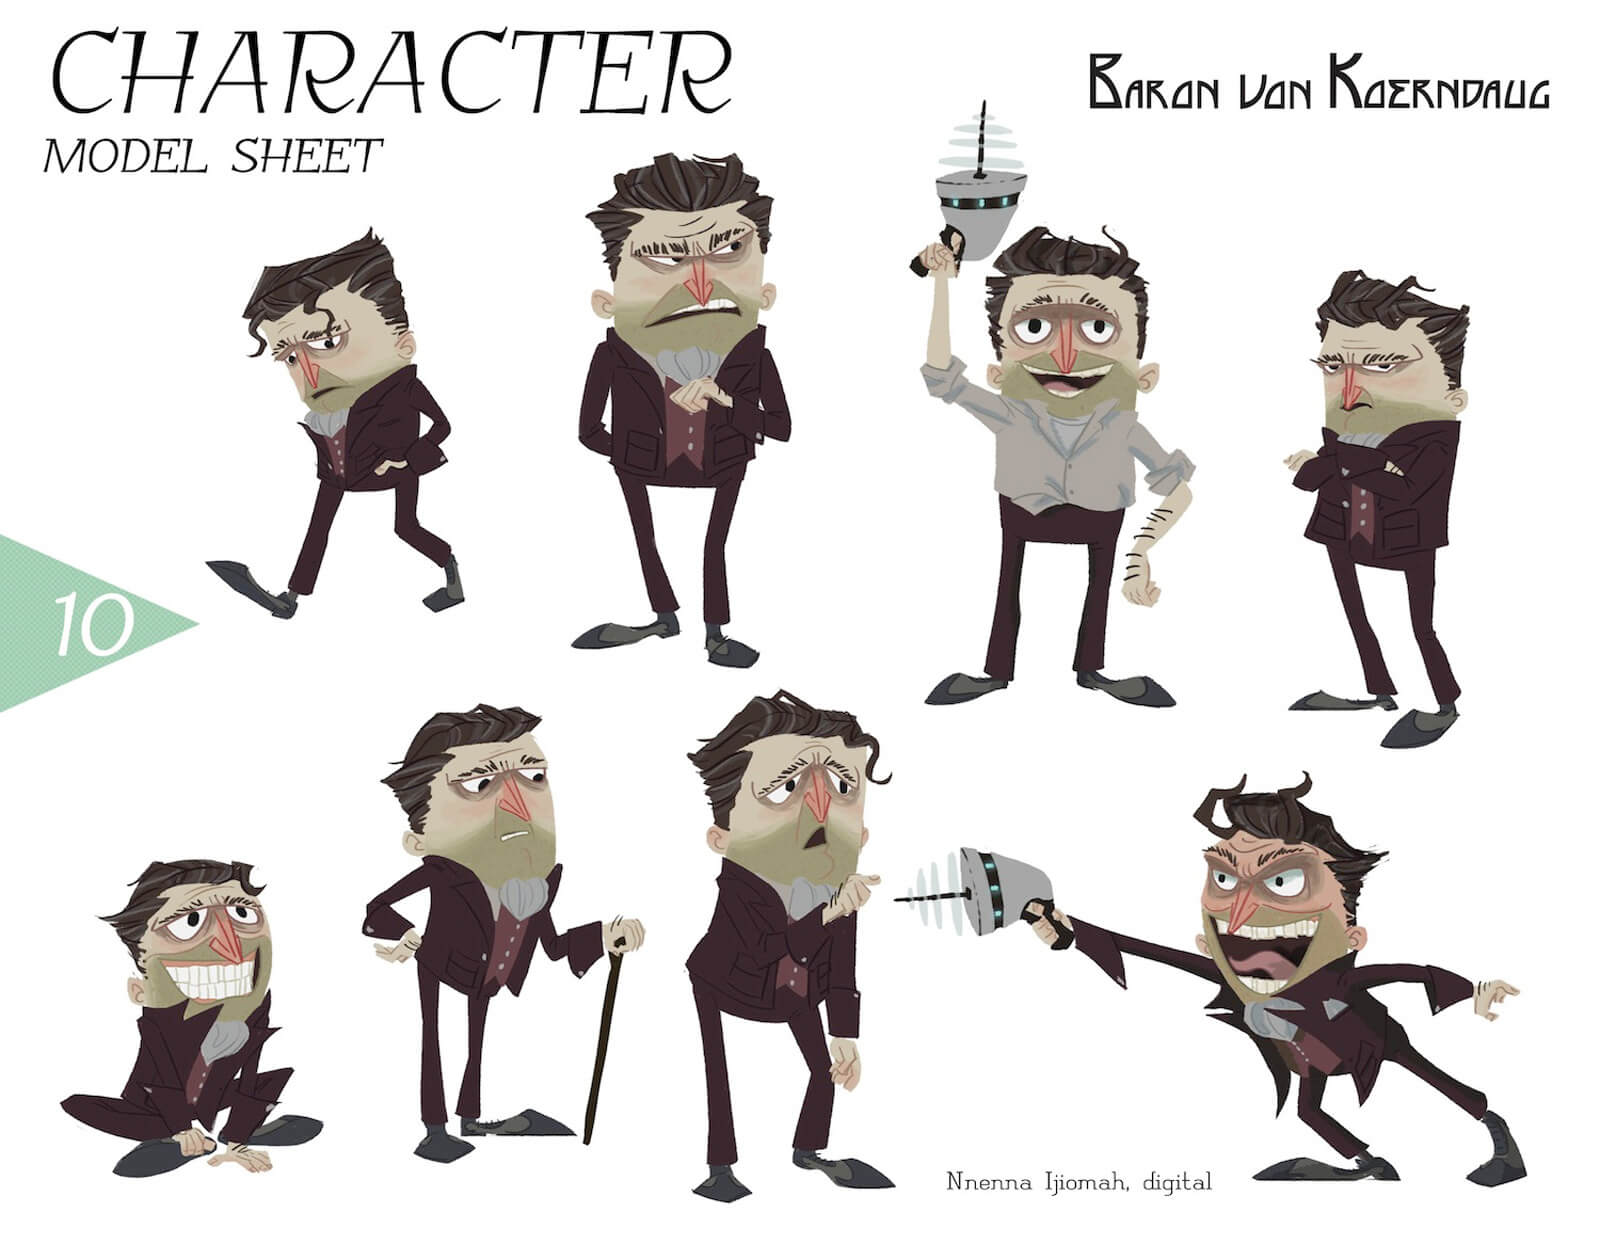 Model sheet for the character of Baron von Koerndaug, including actions and expressions from walking, sitting, sad, and angry